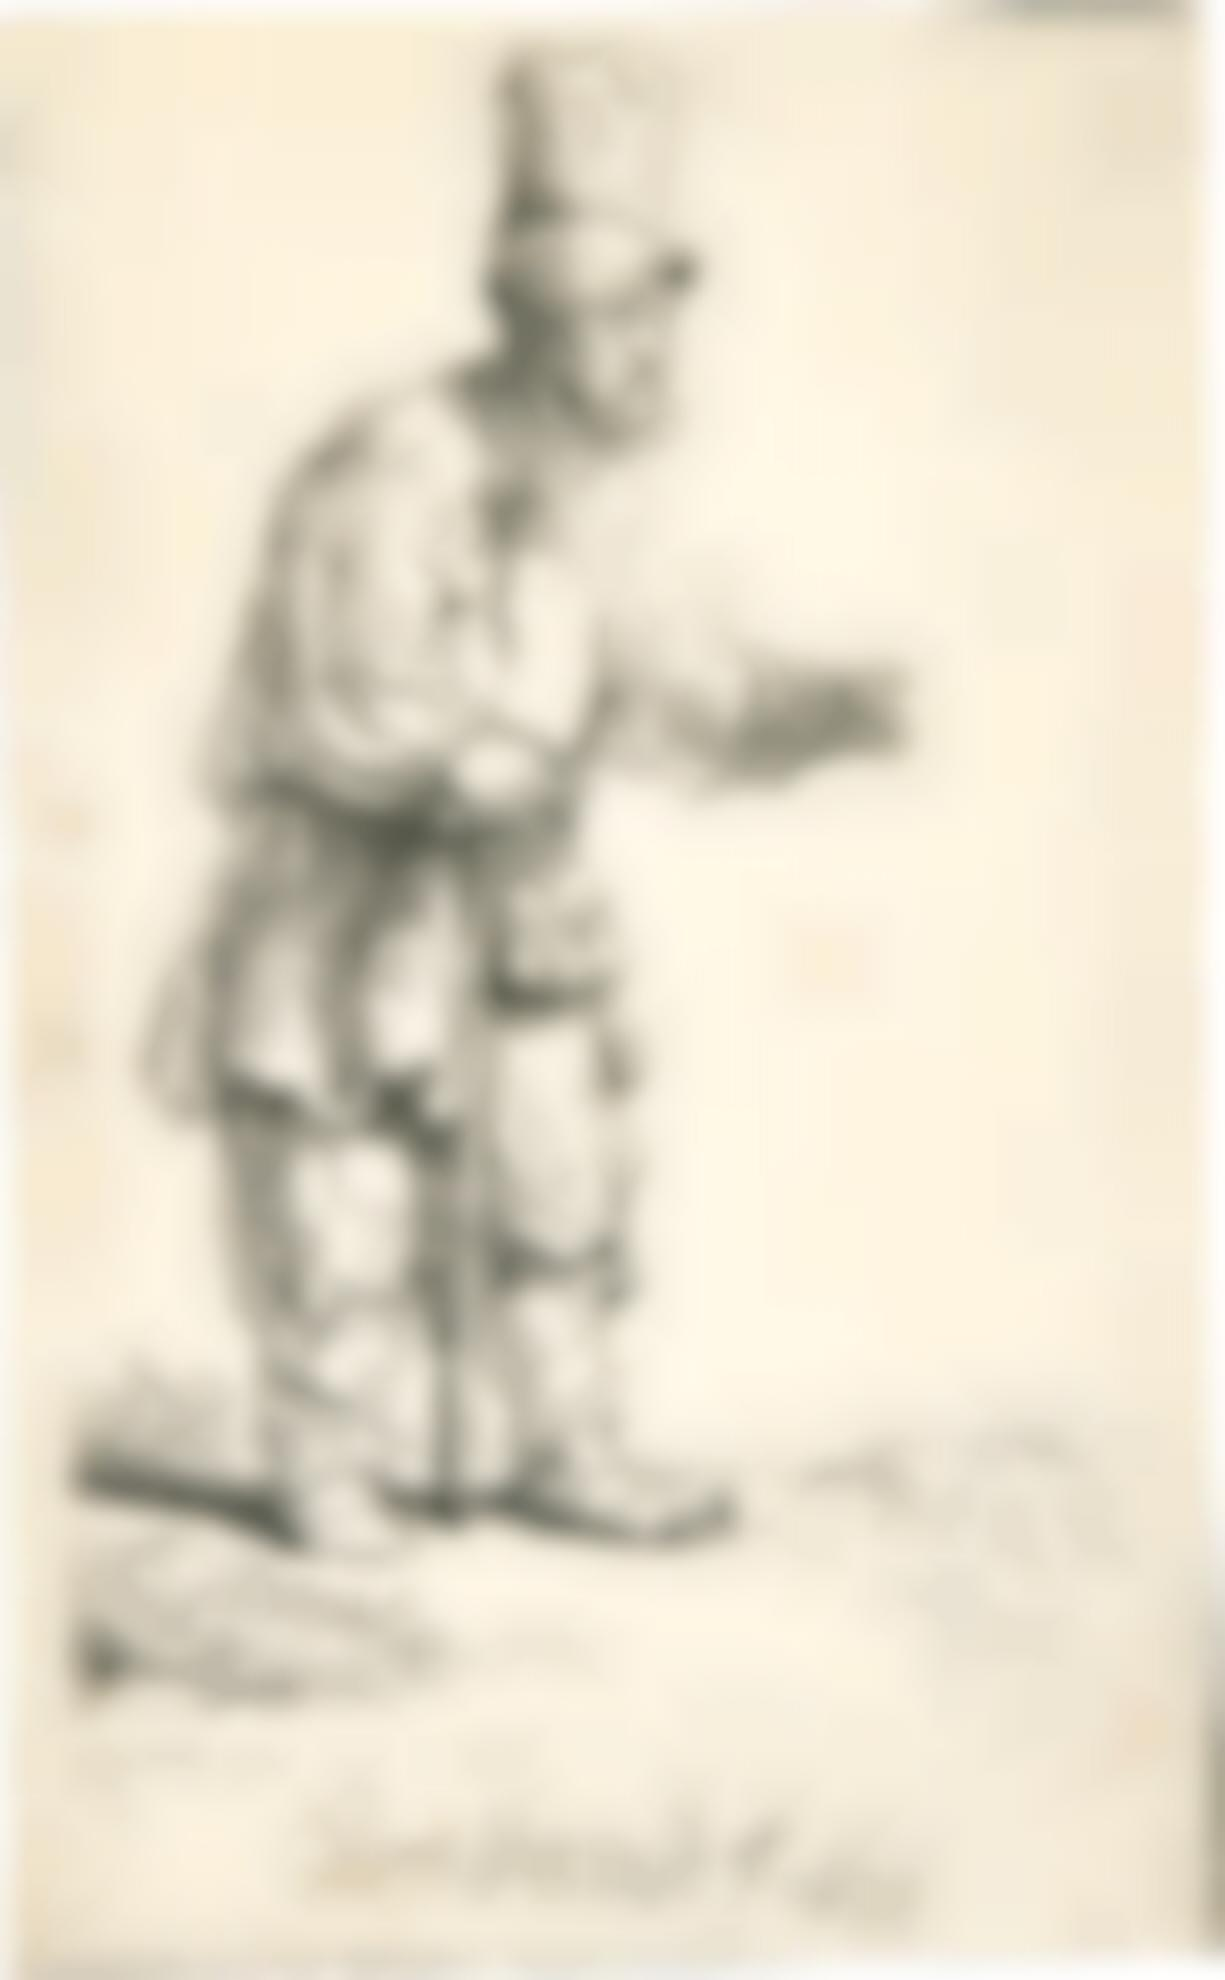 Rembrandt van Rijn-A Peasant In A High Cap, Standing Leaning On A Stick (B., Holl. 133; New Holl. 178; H. 164)-1639